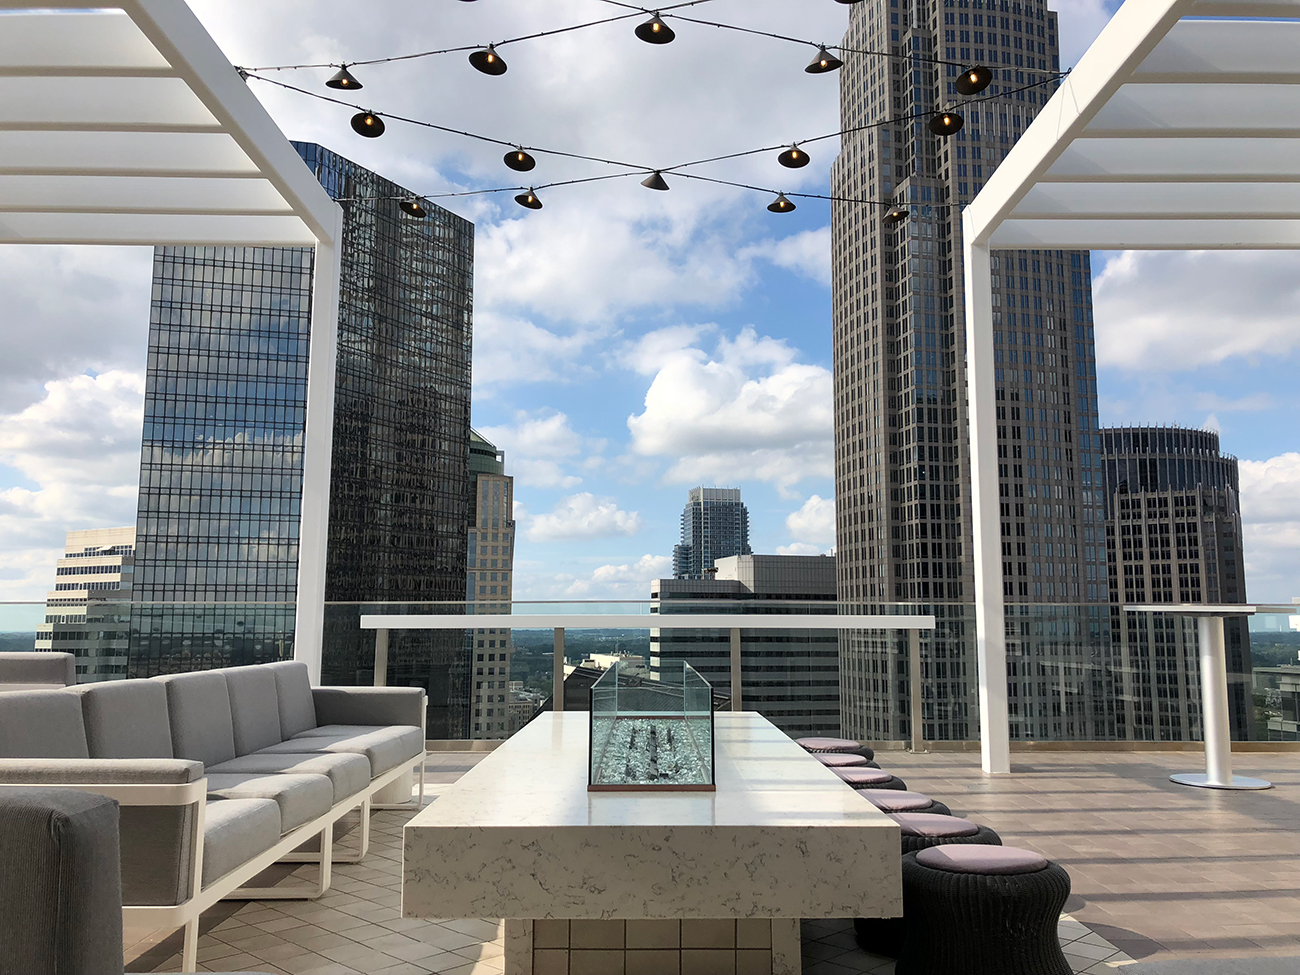 10 best rooftop bars in Charlotte